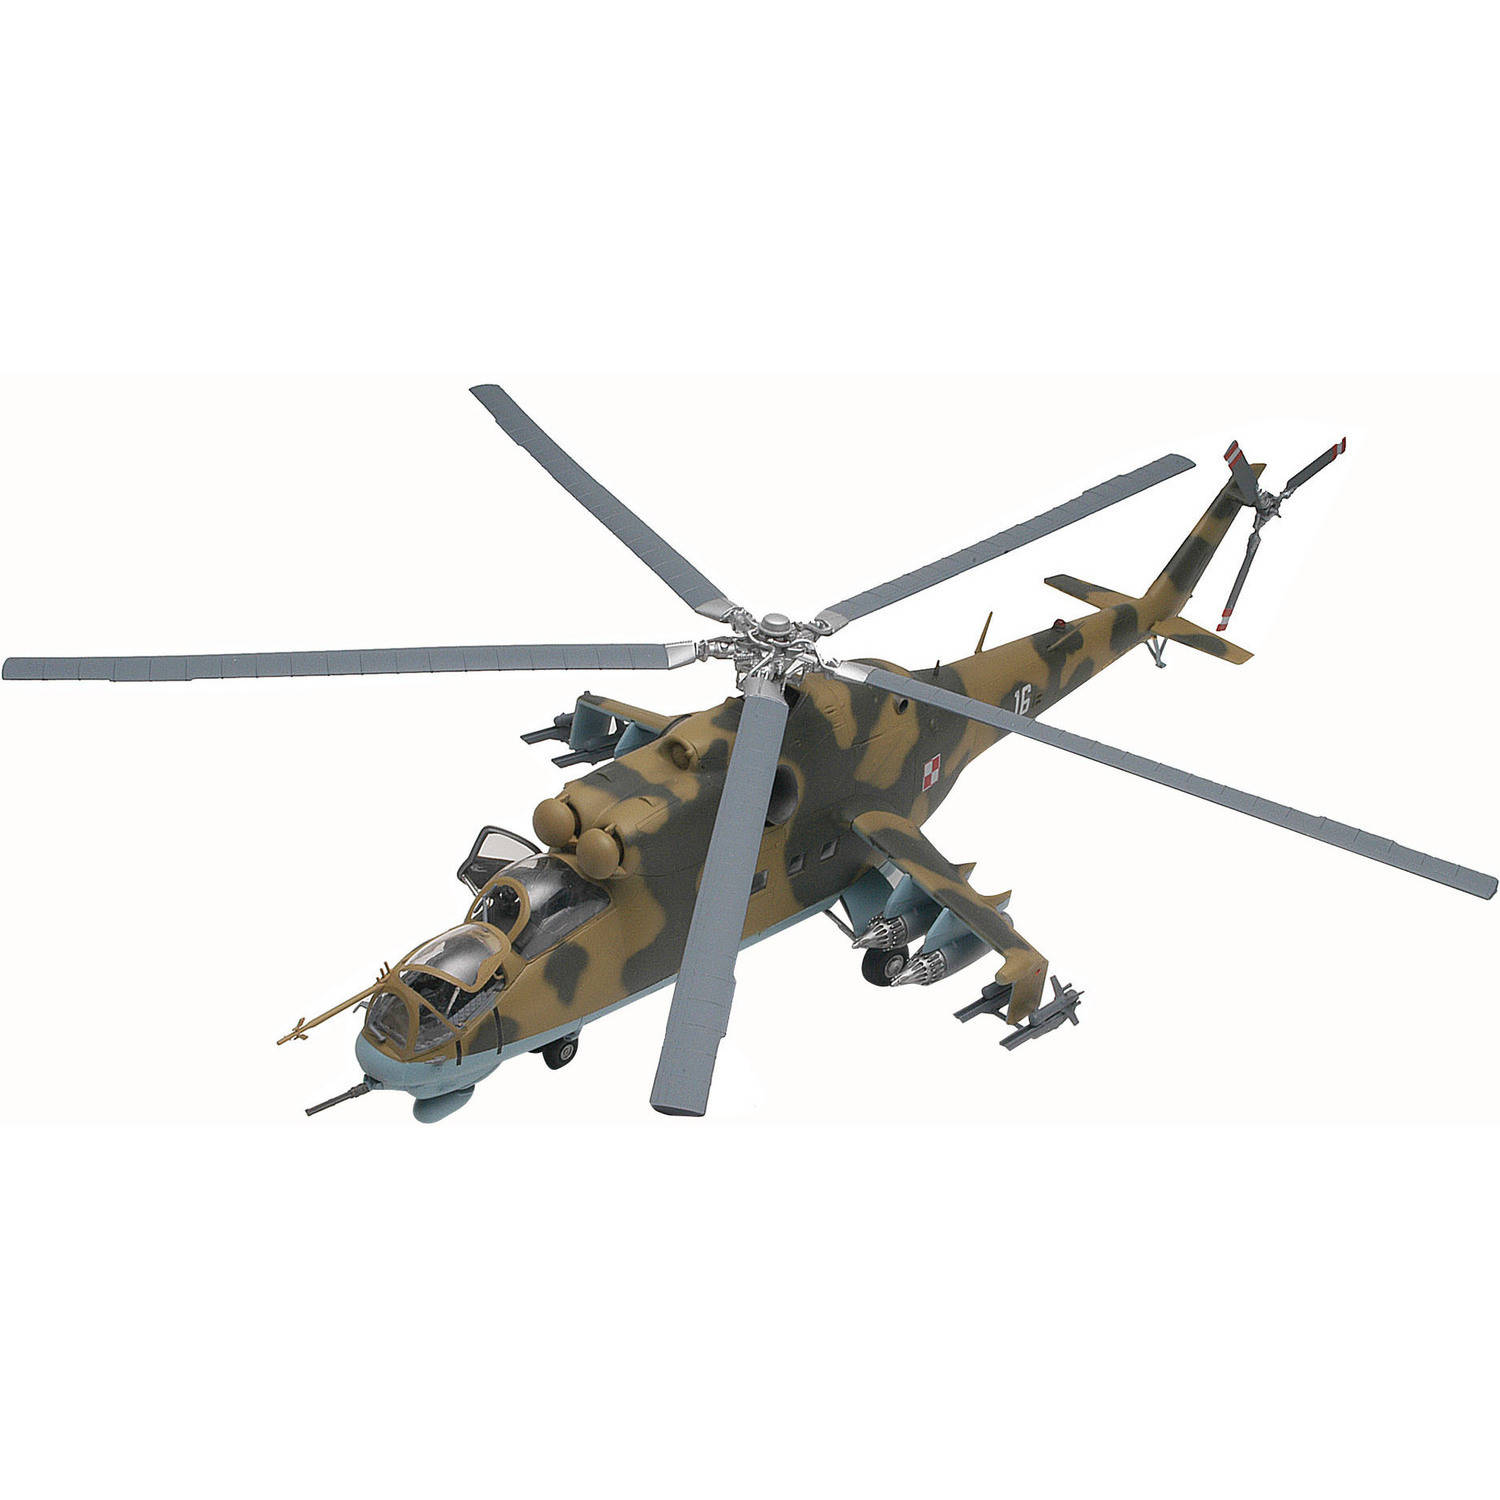 1 48 MiL-24 Hind Helicopter Plastic Model Kit by Revell